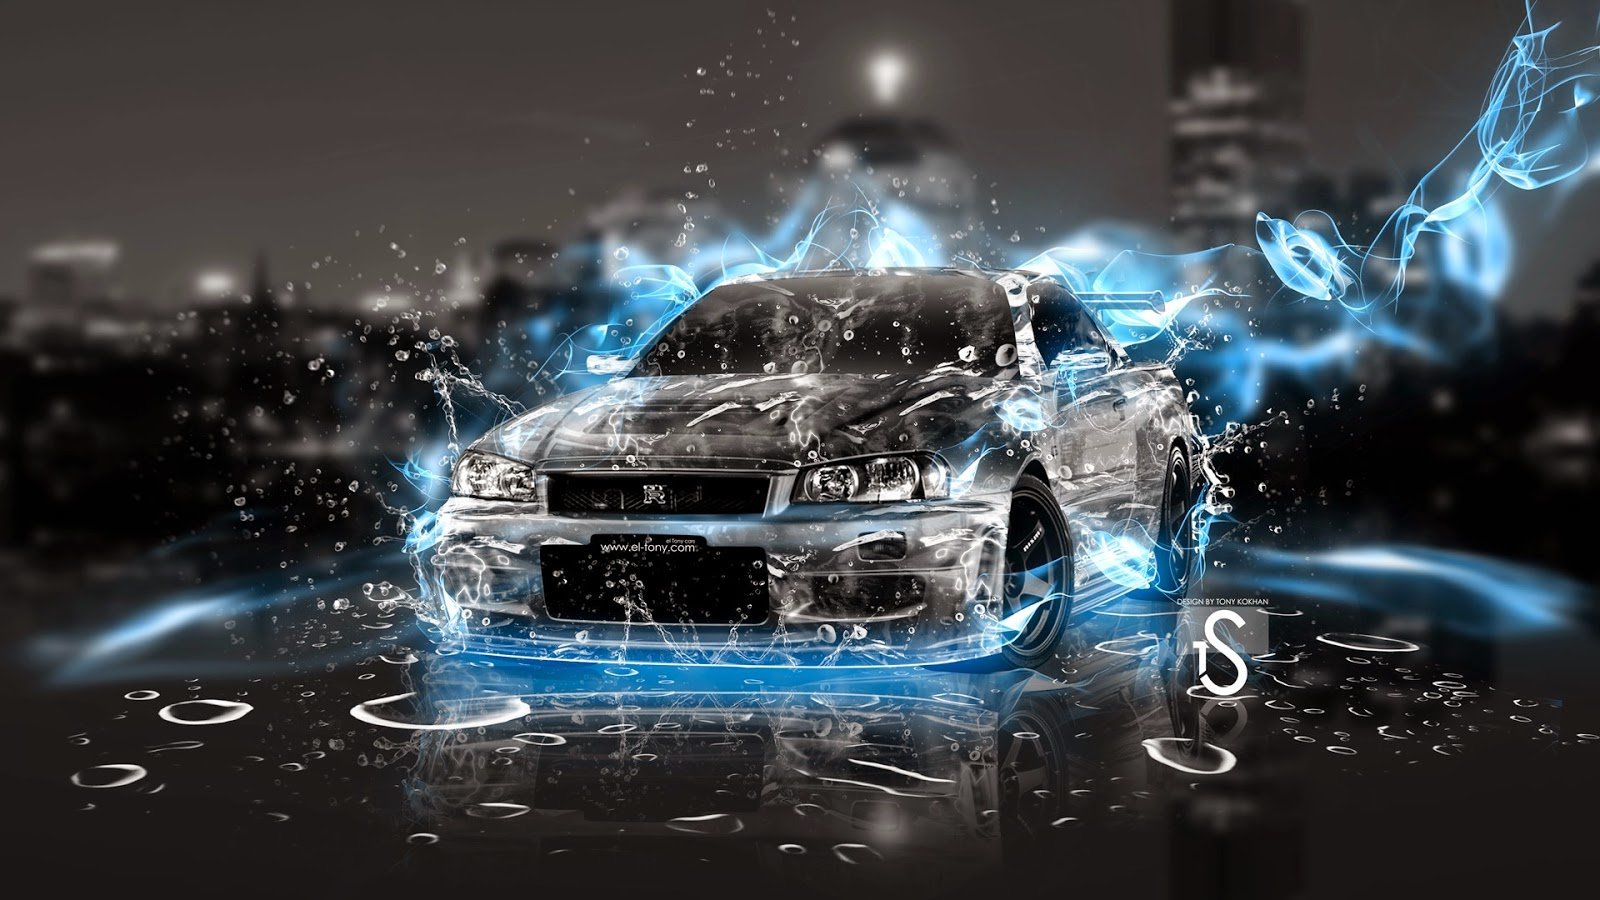 Cool wallpapers car with blue fire free 4d wallpaper for 4d wallpaper for home